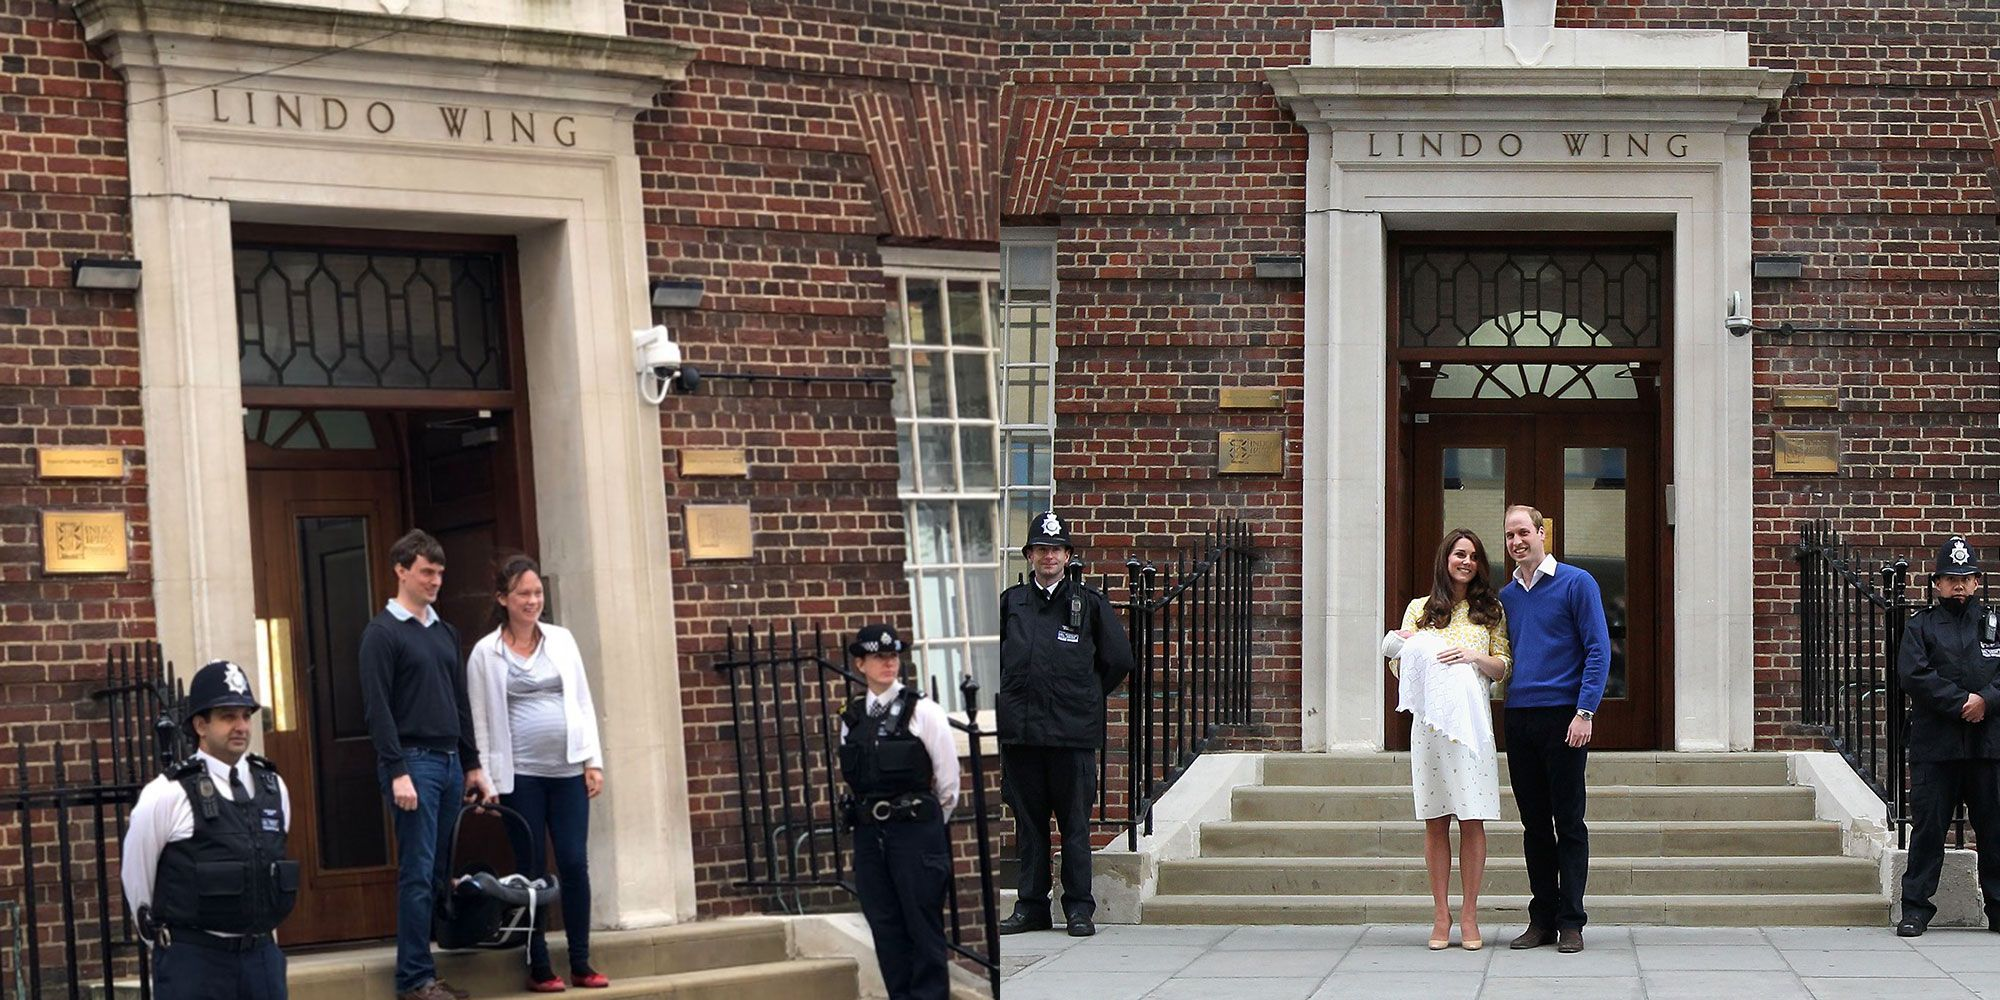 This couple posed for photos with their newborn baby outside the Lindo Wing